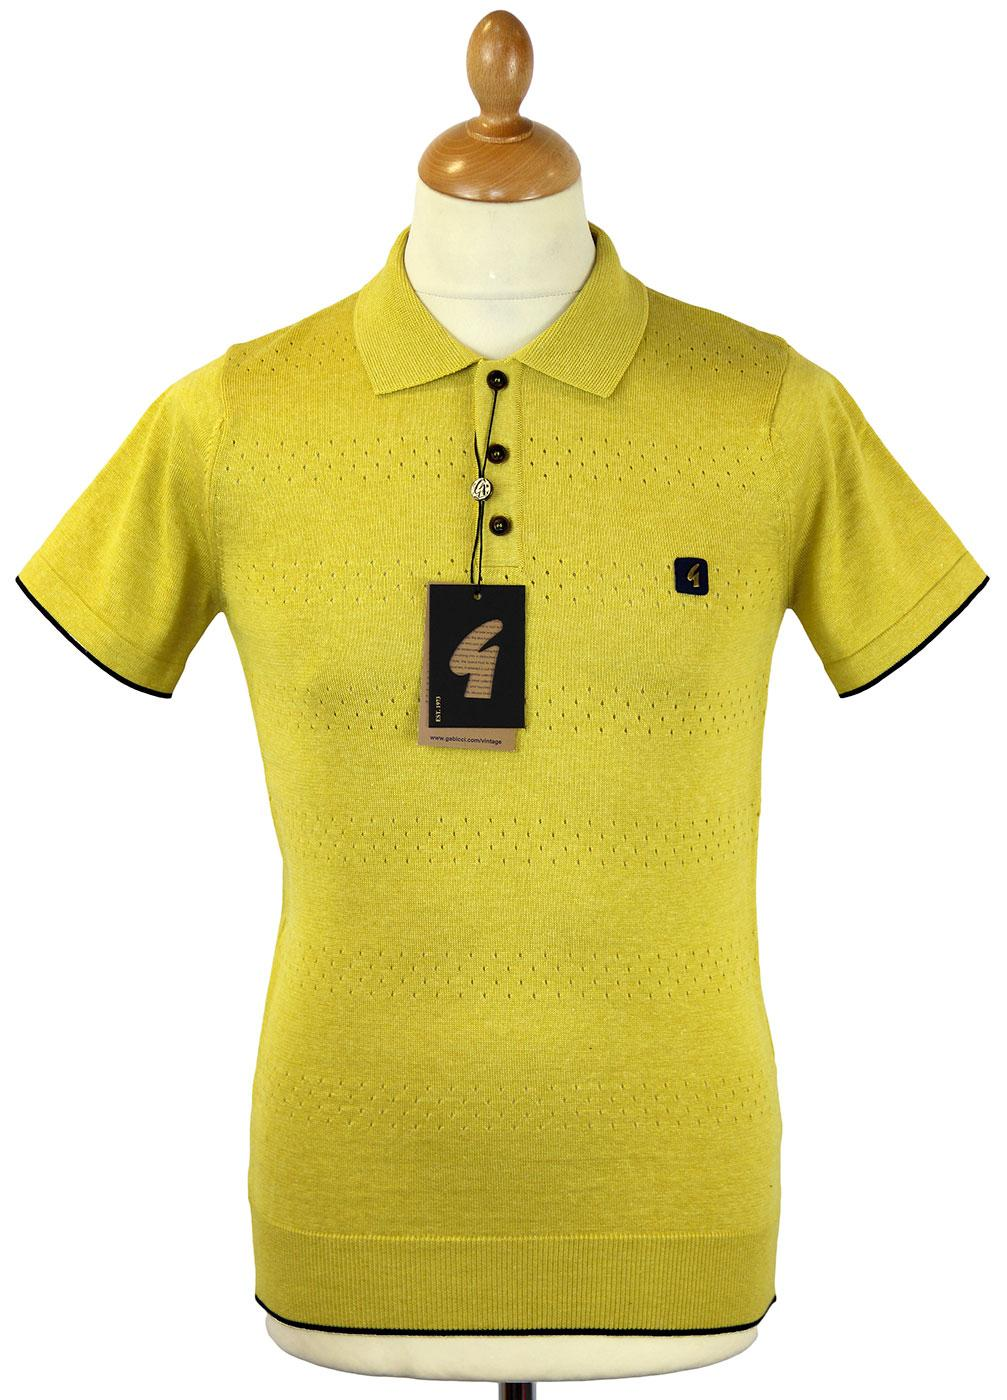 GABICCI VINTAGE Retro Mod Perforated Knit Polo C